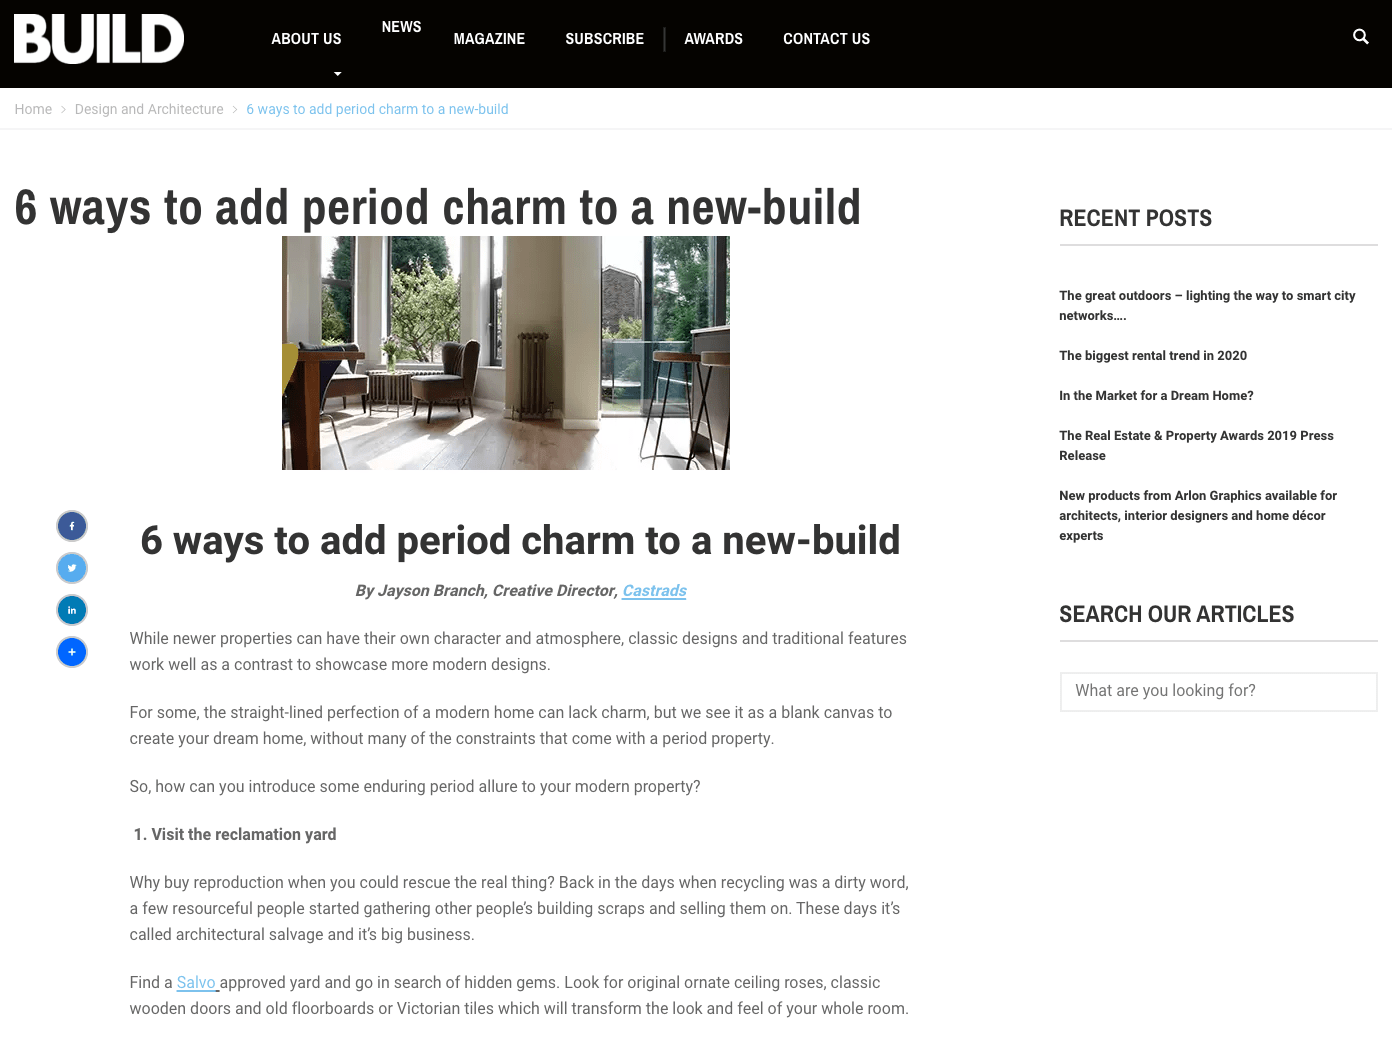 Build Review, June 2018. Article highlighting 6 ways to add period charm to a new-build.